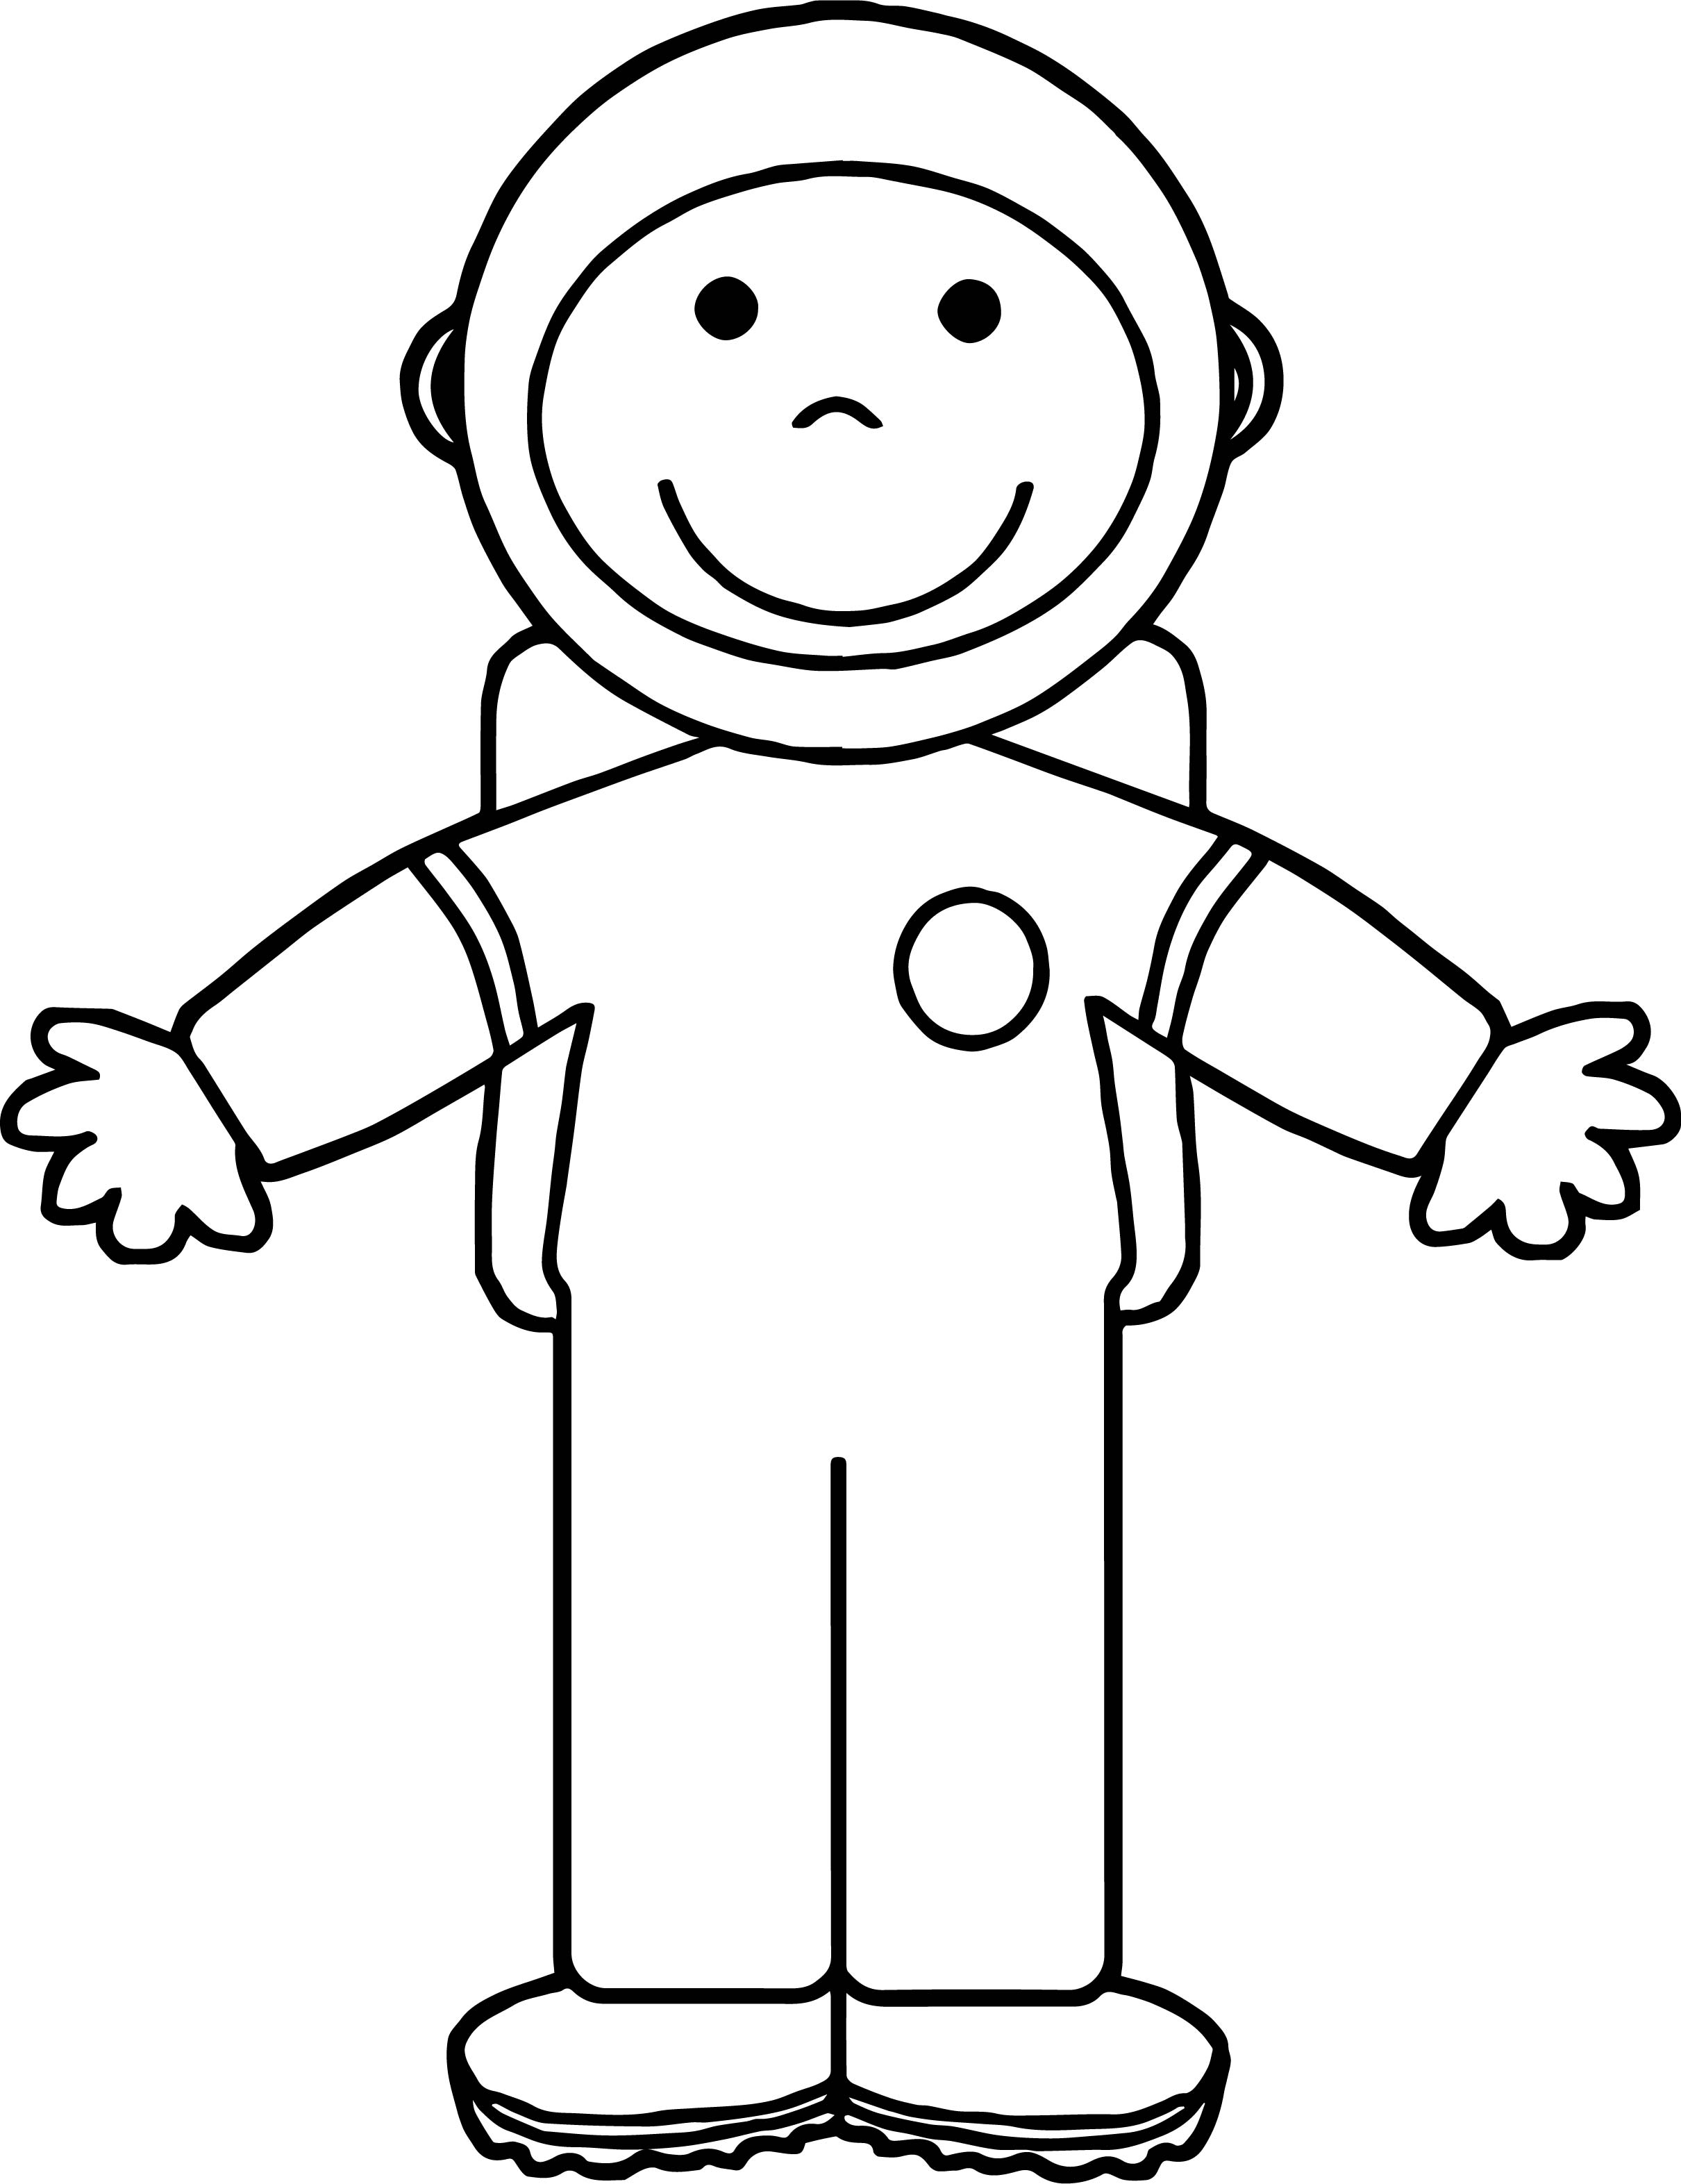 preschool astronaut printables - HD 2421×3145